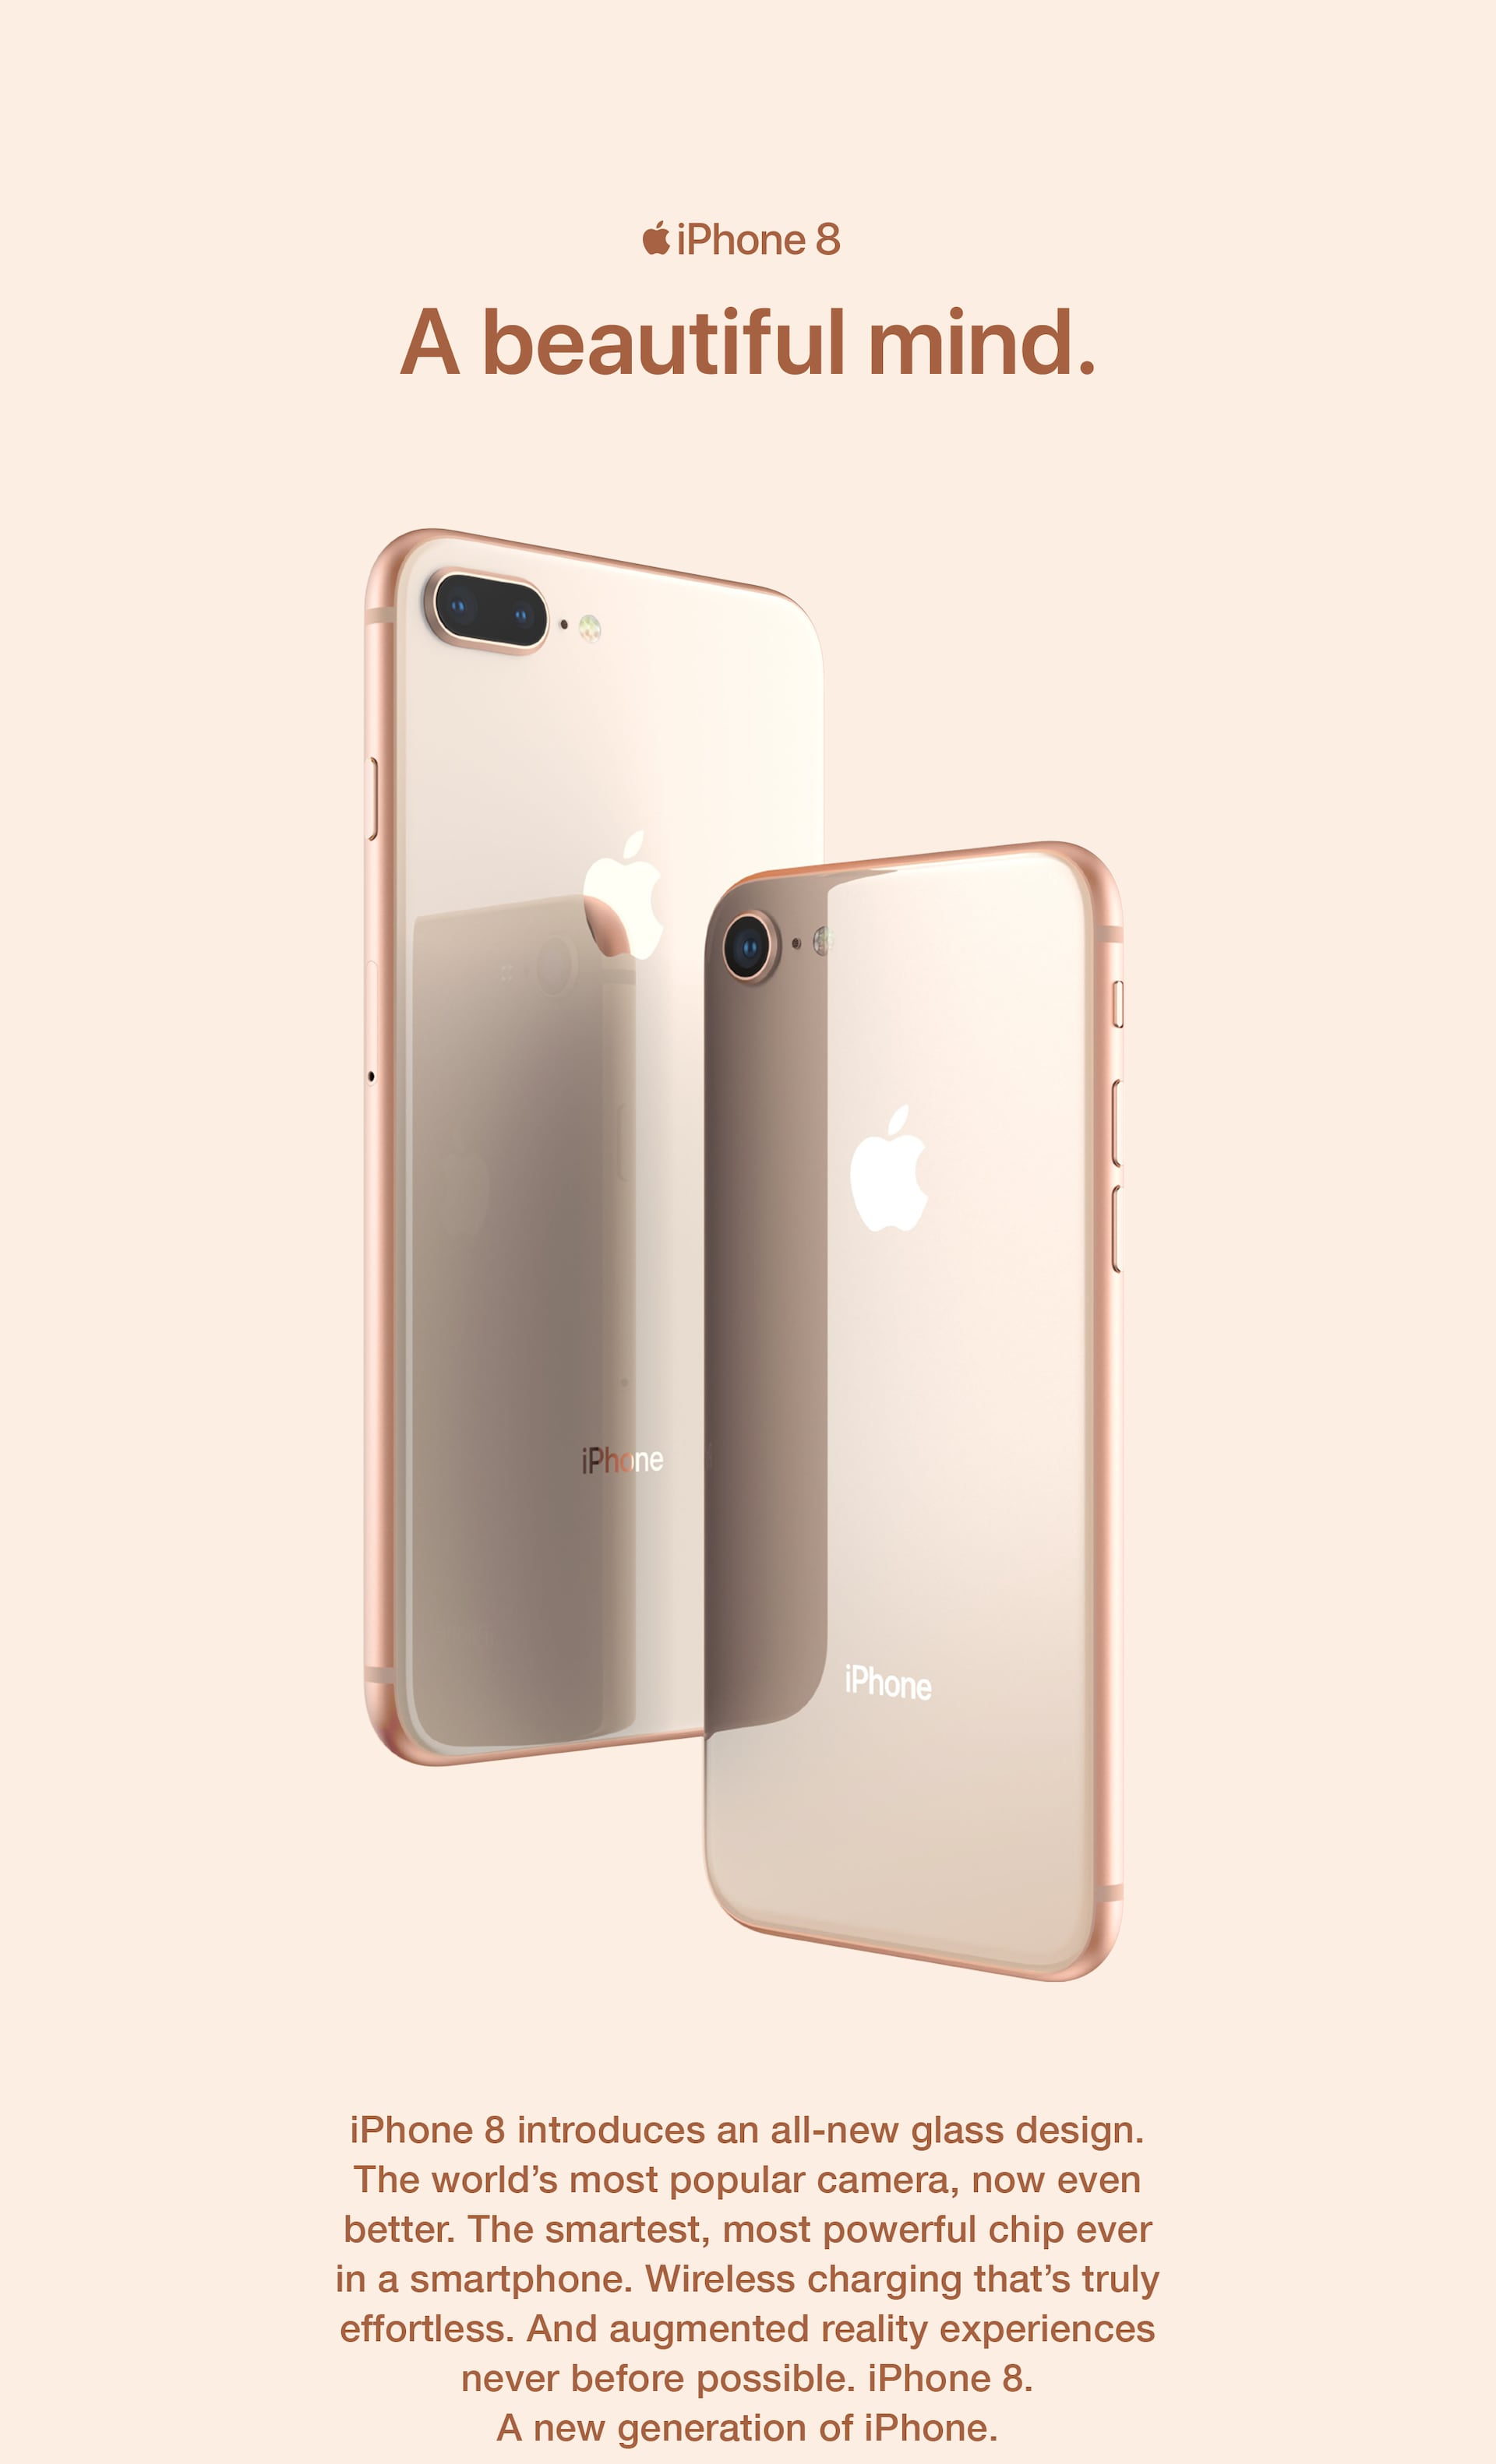 iPhone 8. A beautiful mind. iPhone 8 introduces an all‑new glass design. The world's most popular camera, now even better. The most powerful and smartest chip ever in a smartphone. Wireless charging that's truly effortless. And augmented reality experiences never before possible. iPhone 8. A new generation of iPhone.